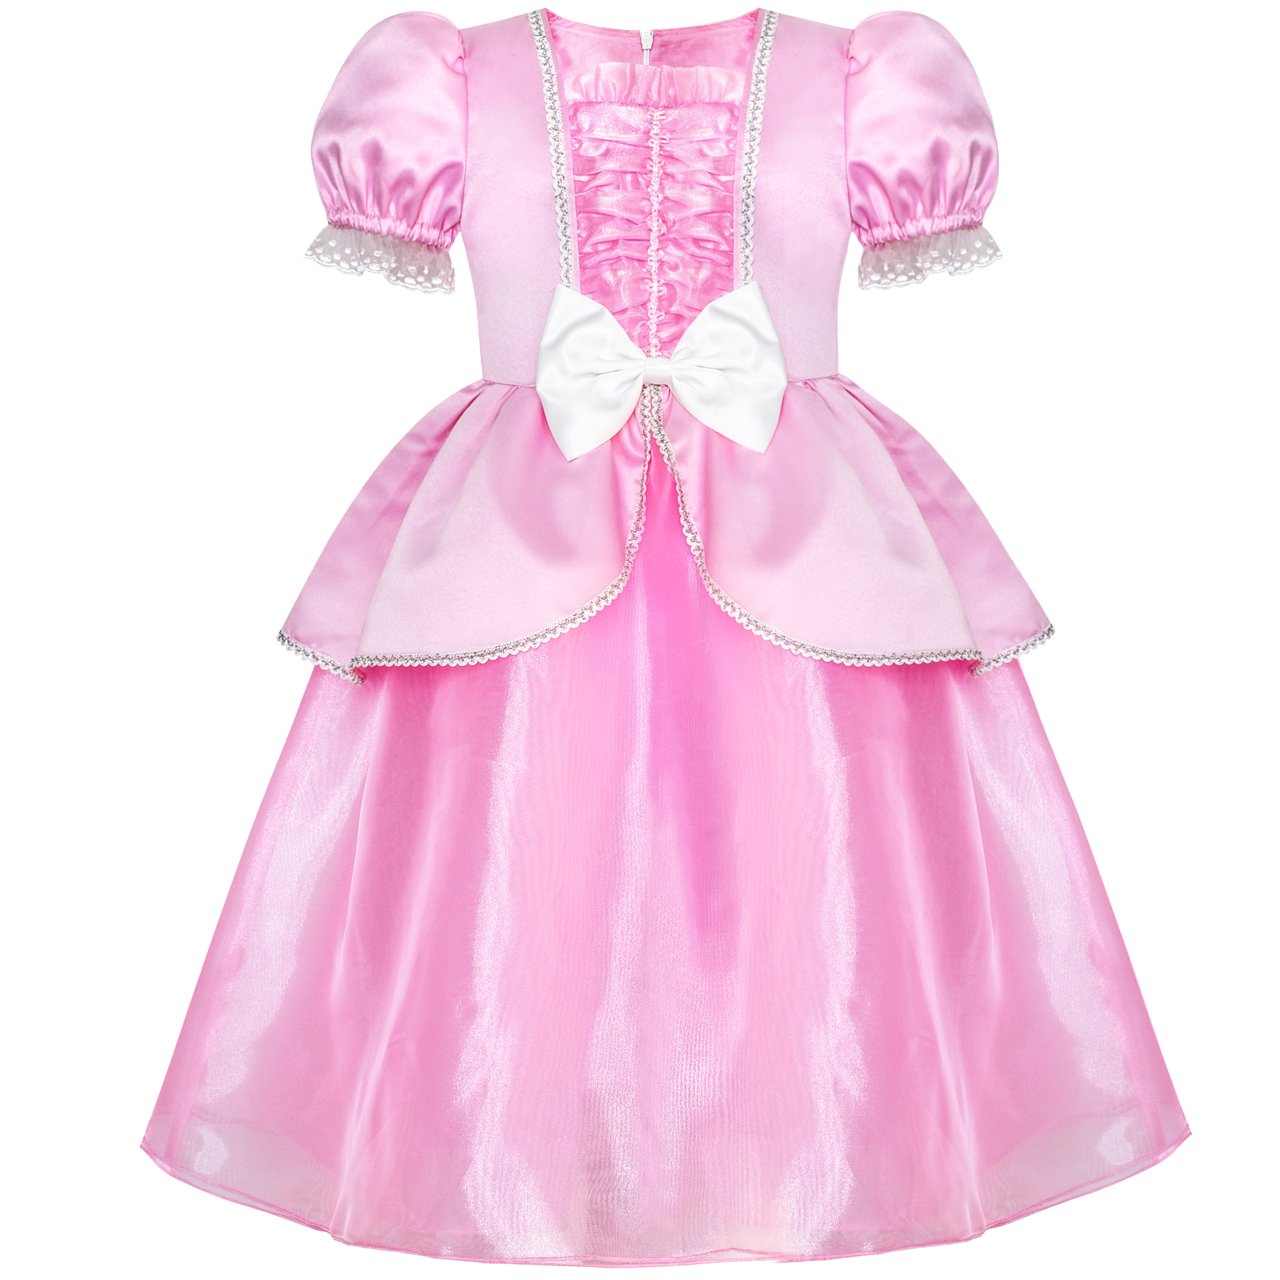 Girls Dress Pink Princess Cosplay Costume Dress Up Party 2018 Summer Wedding Dresses Girl Clothes Size 6 12